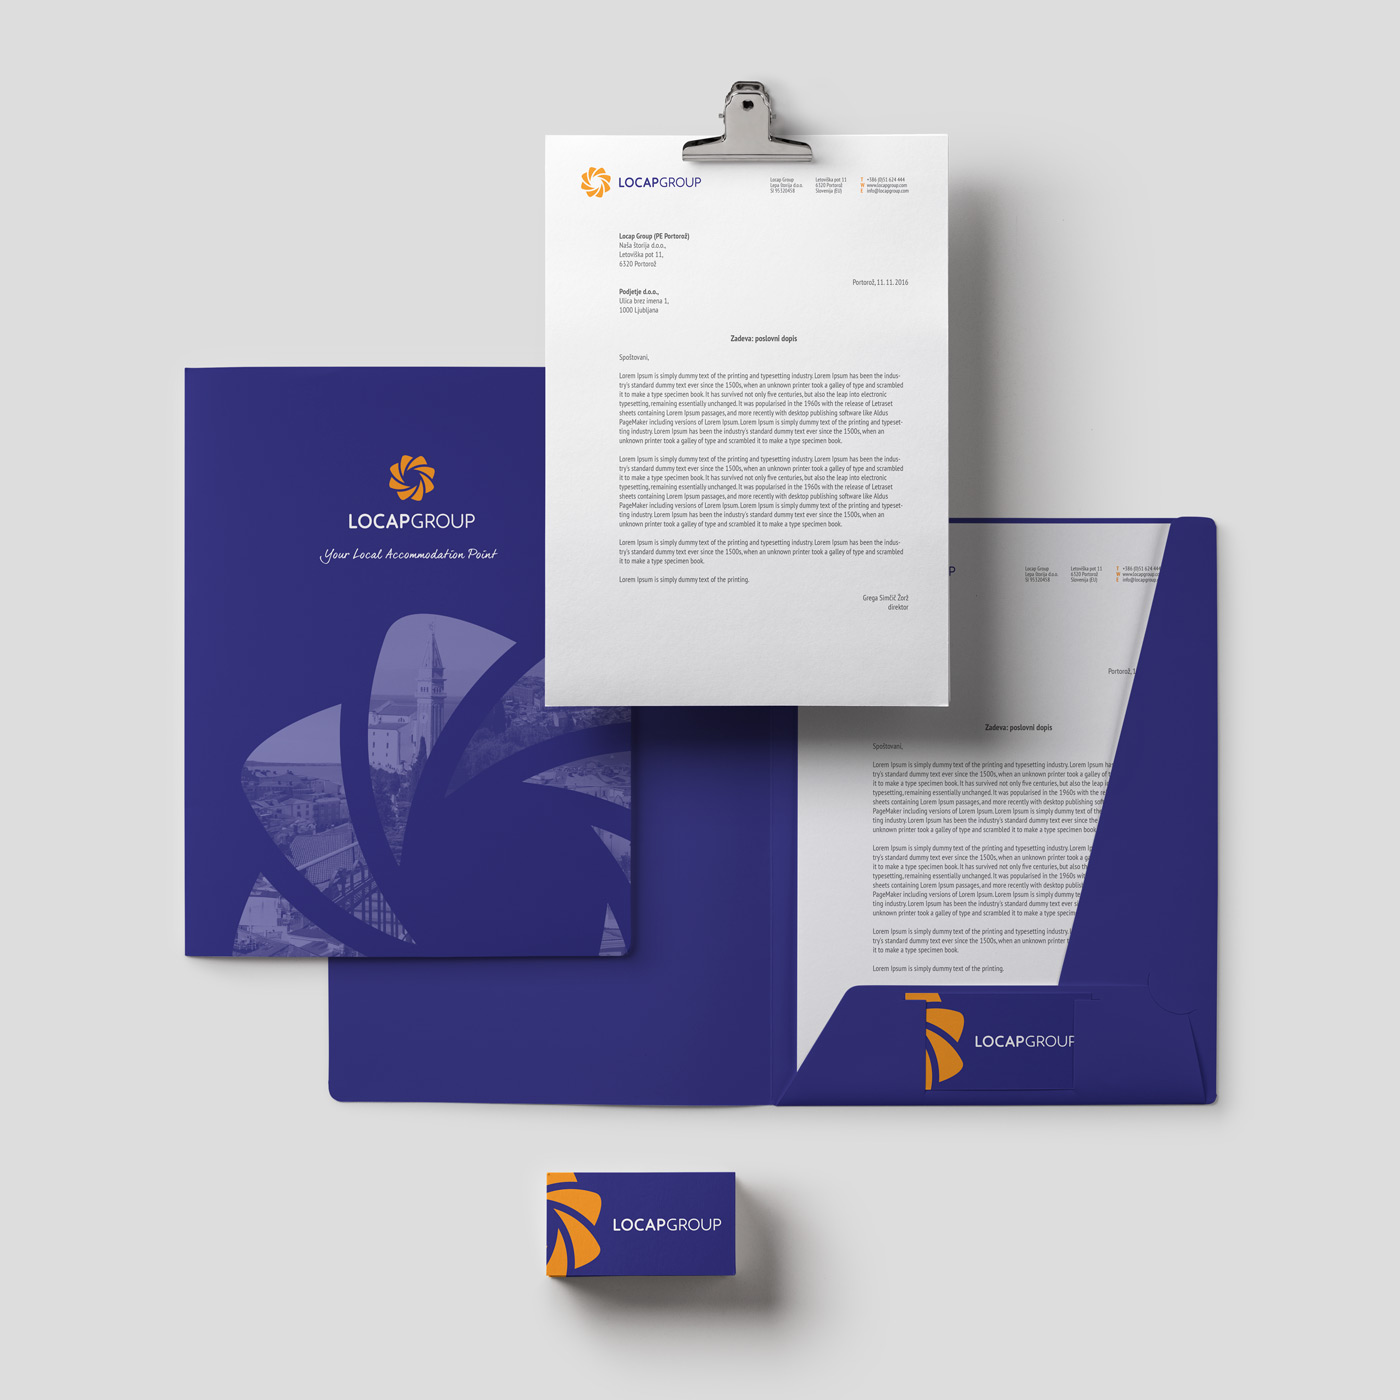 Rok Jurman Design for Locap Group (Portorož and Piran) - stationary